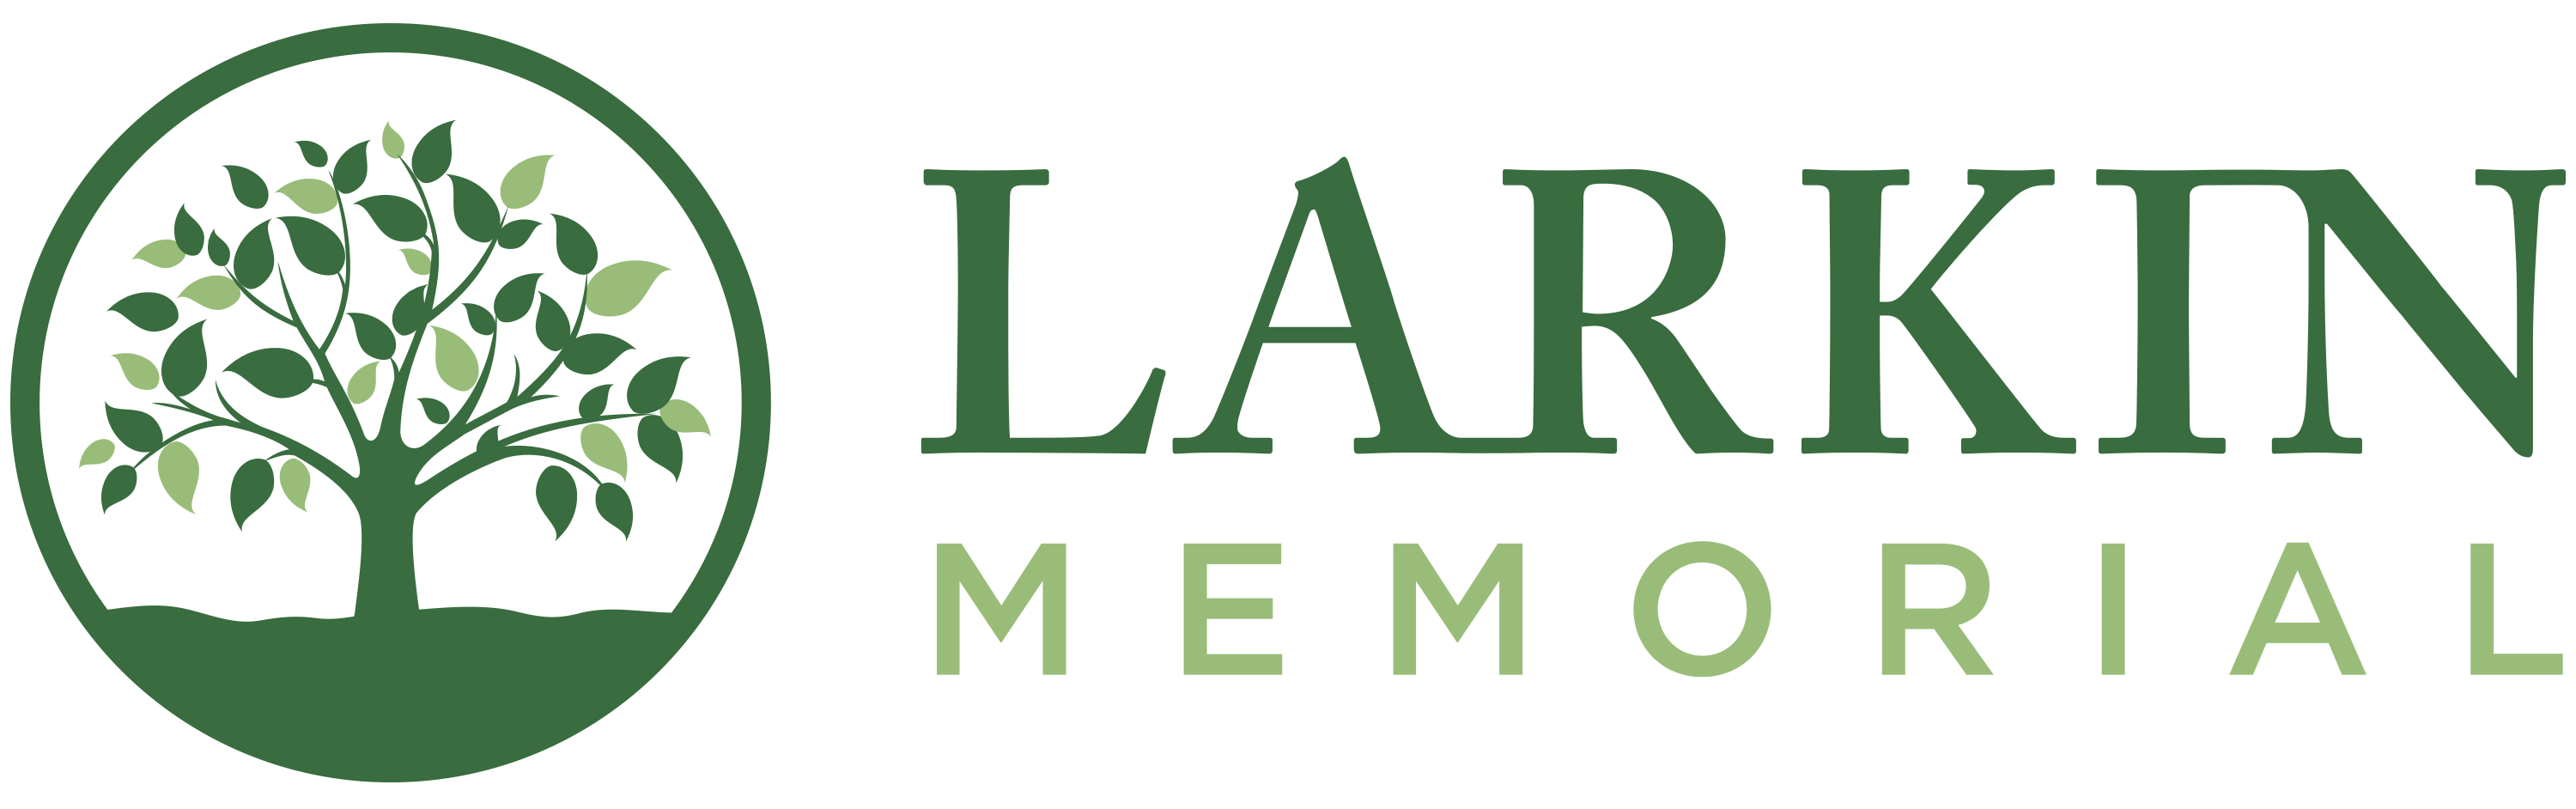 Larkin Memorial Logo